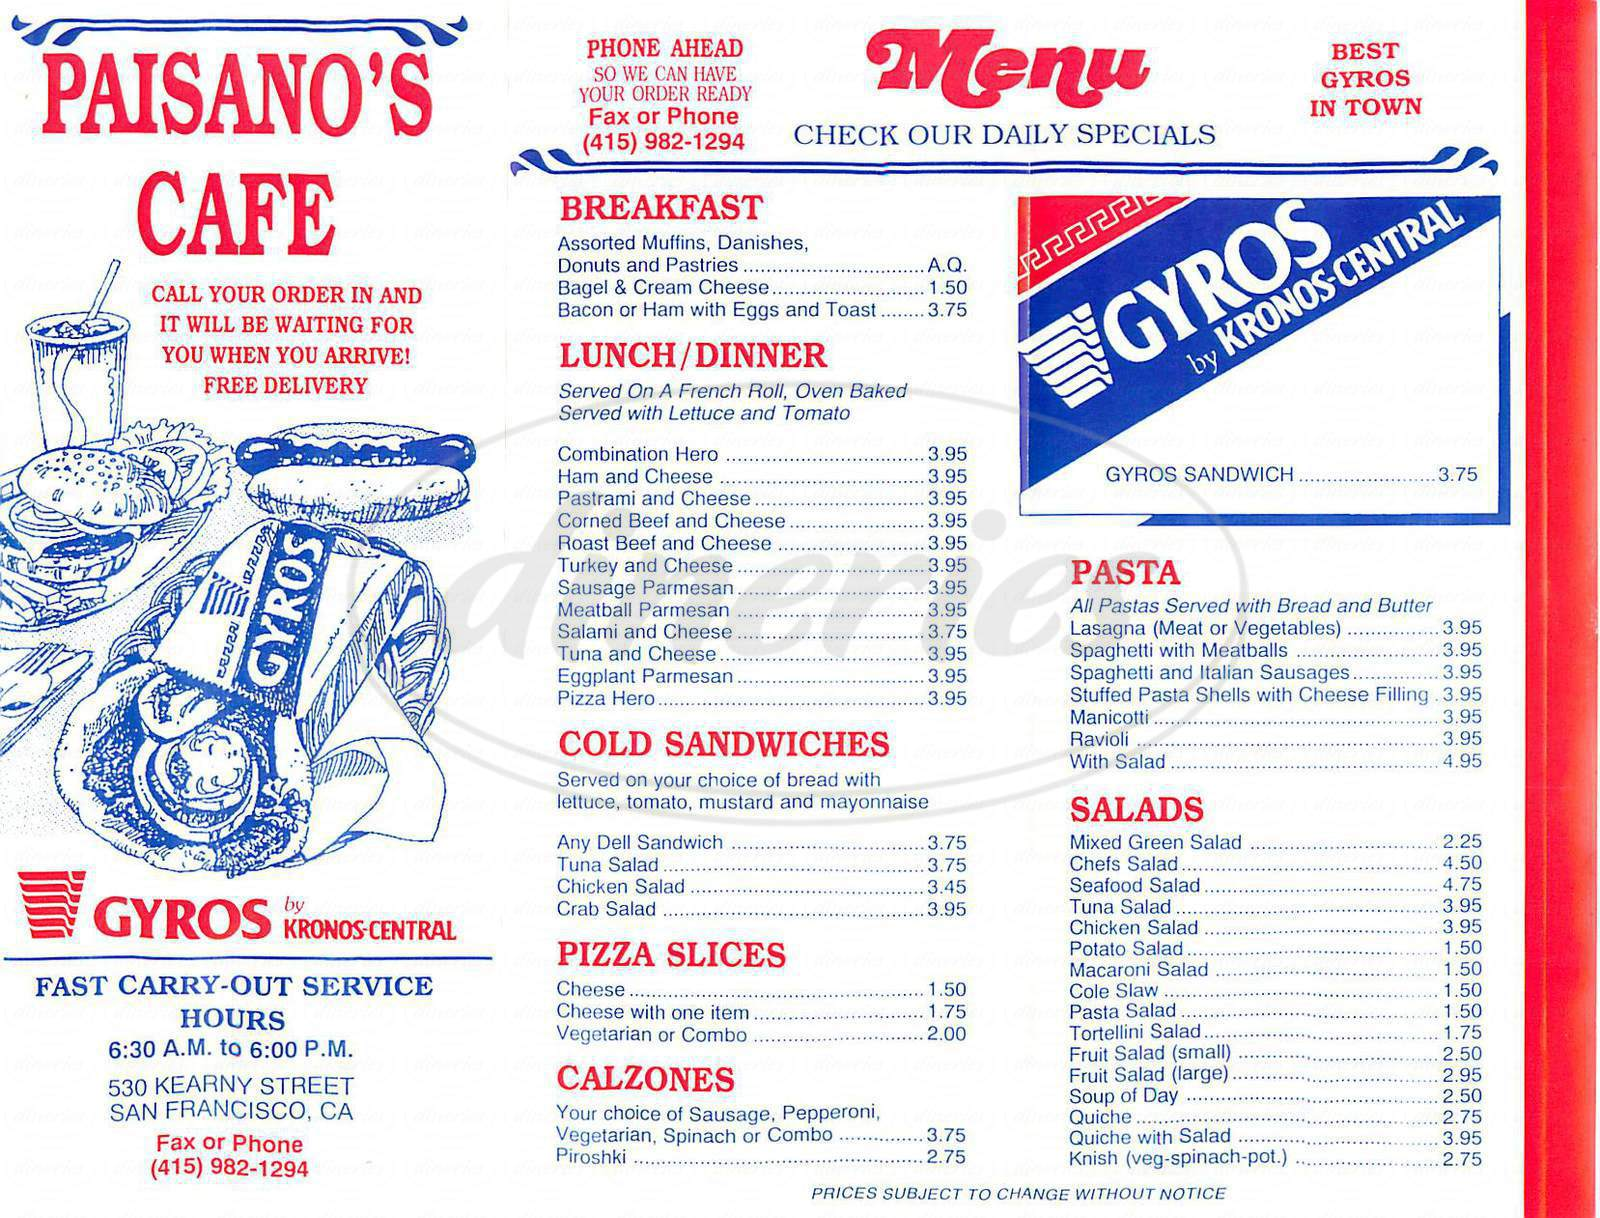 menu for Paisanos Cafe